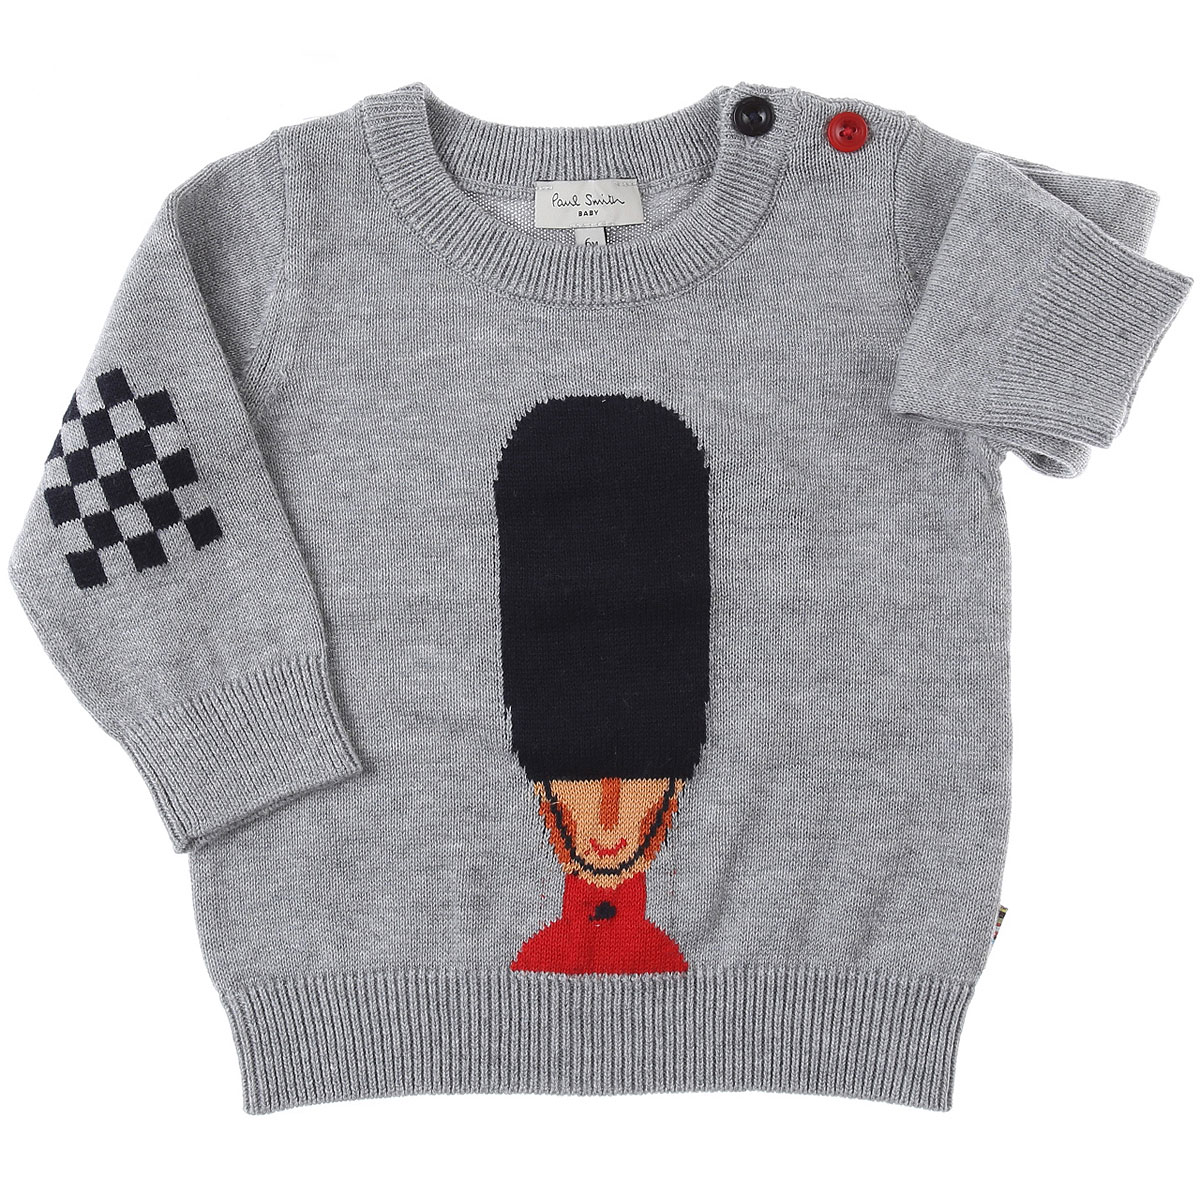 Paul Smith Baby Sweaters for Boys On Sale, Grey, Cotton, 2019, 12 M 18M 2Y 3Y 6M 9M